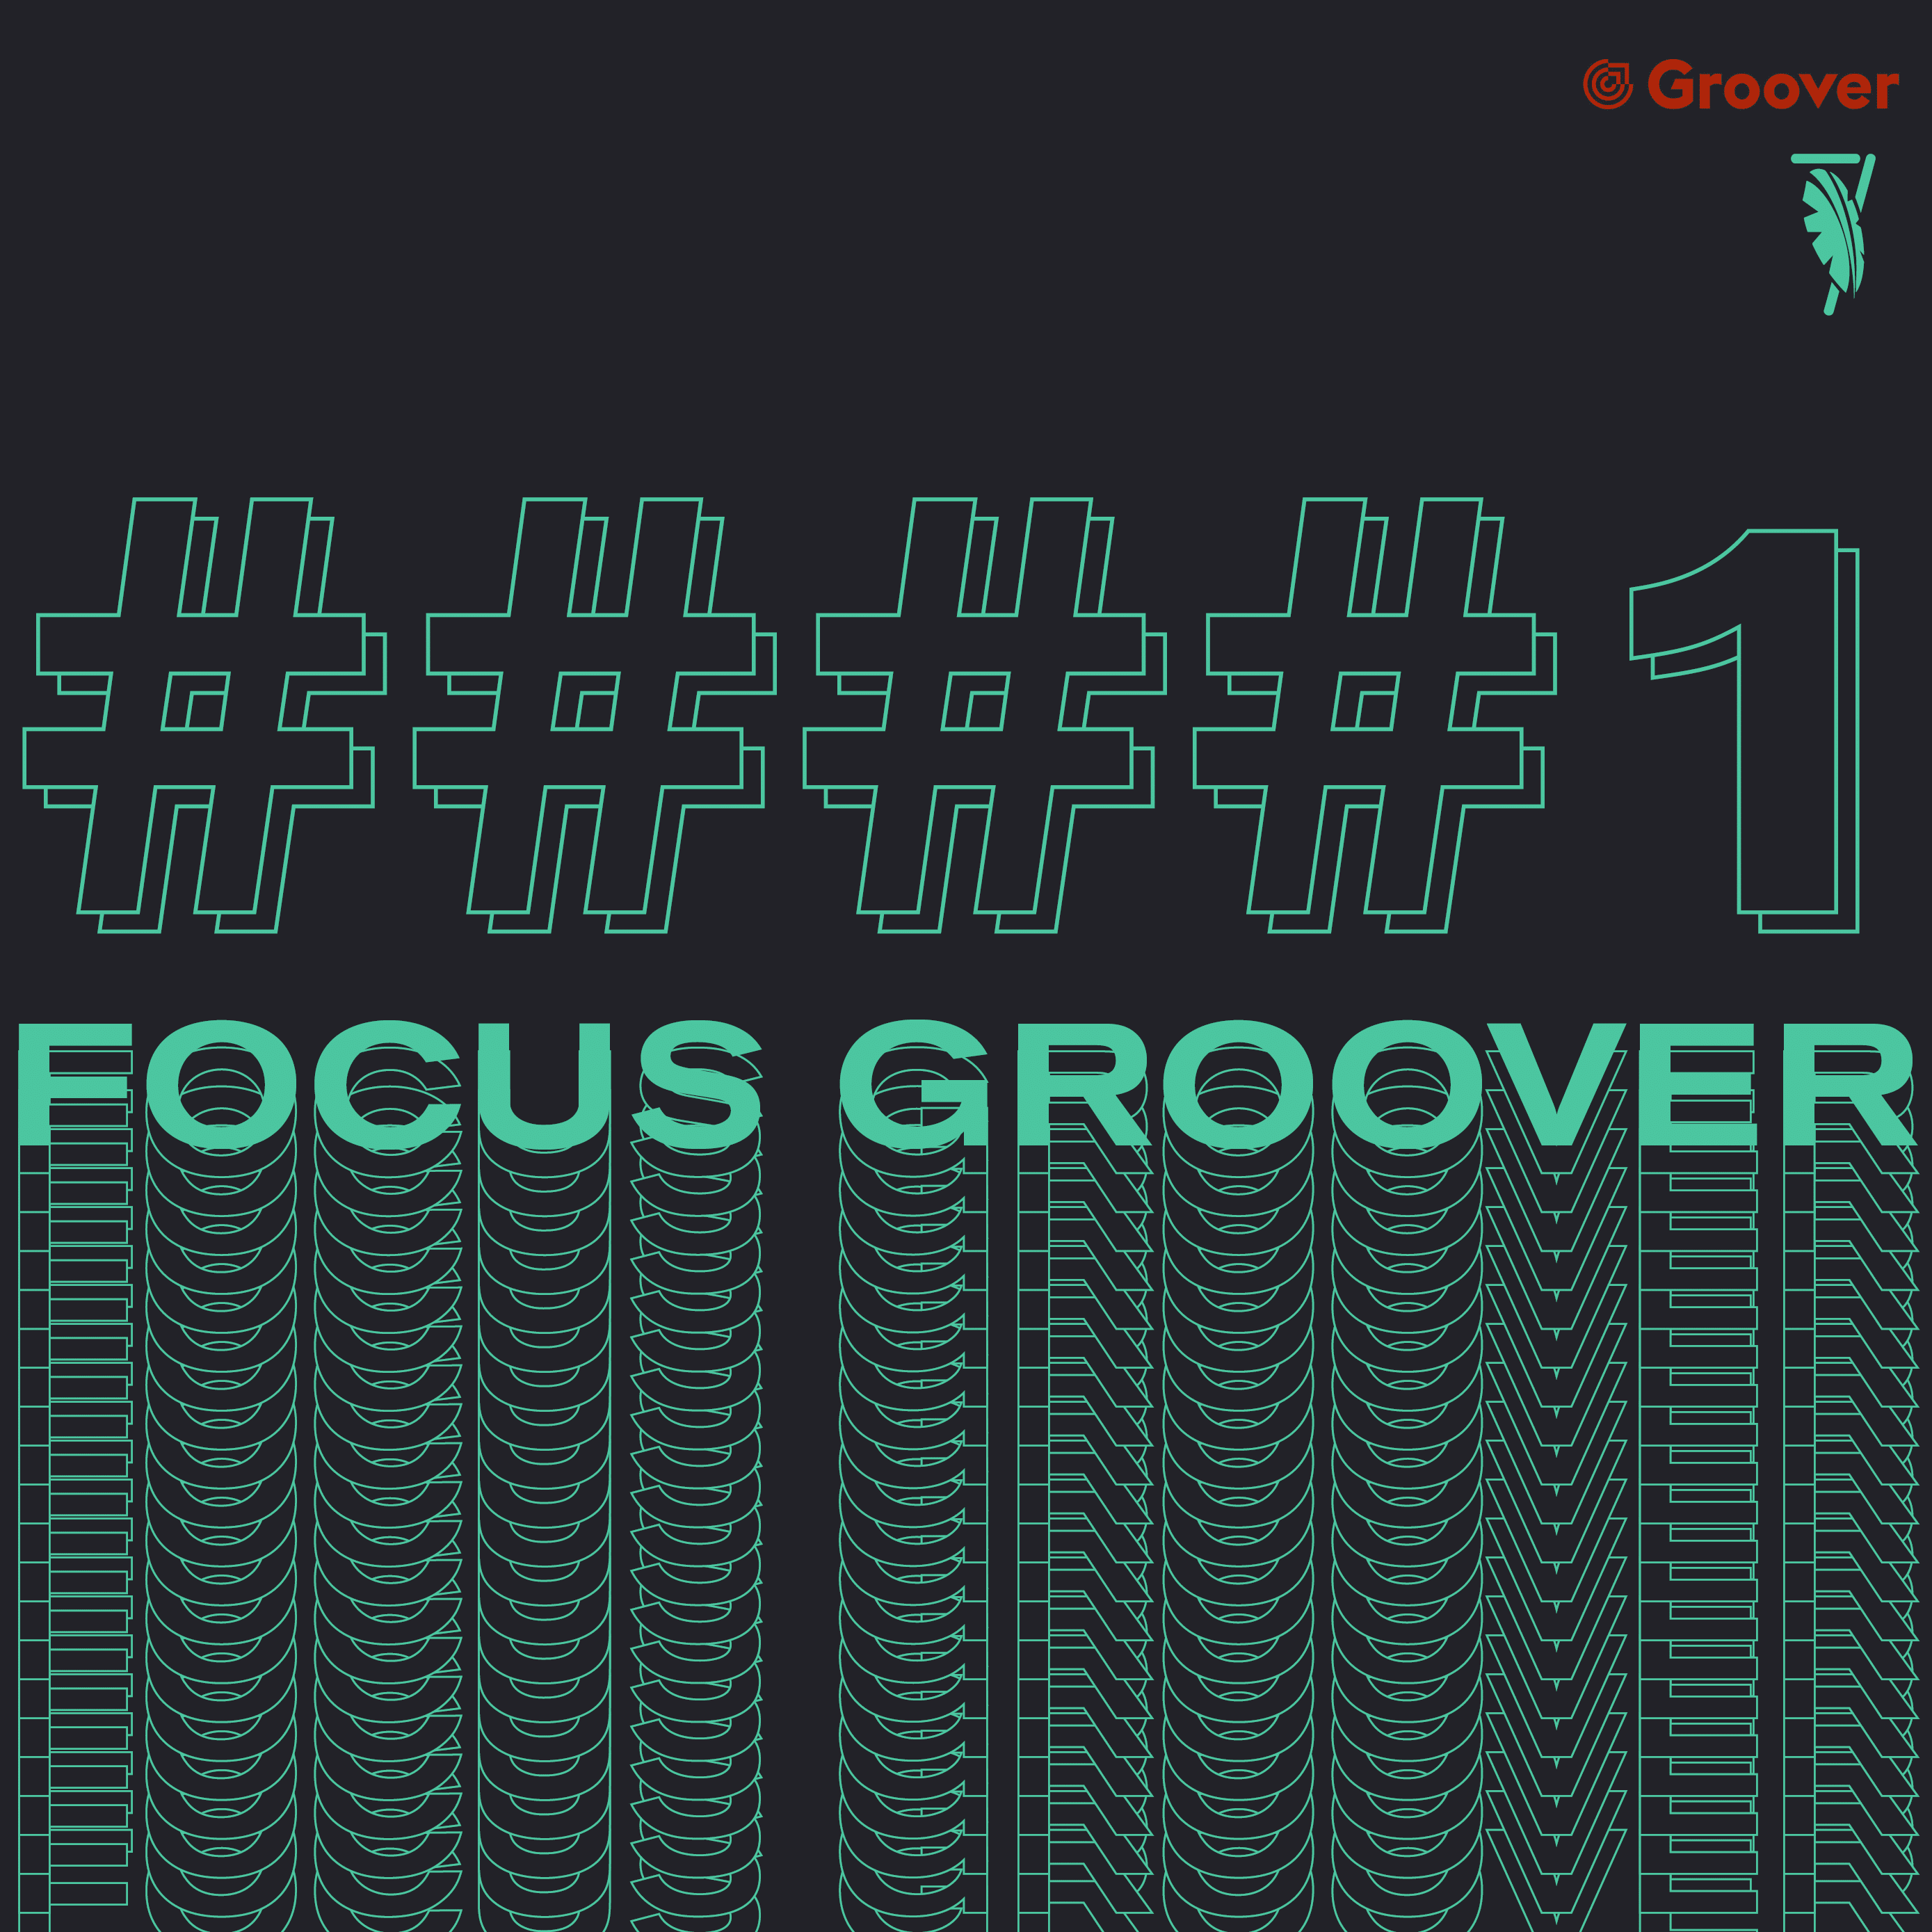 FOCUS GROOVER #1